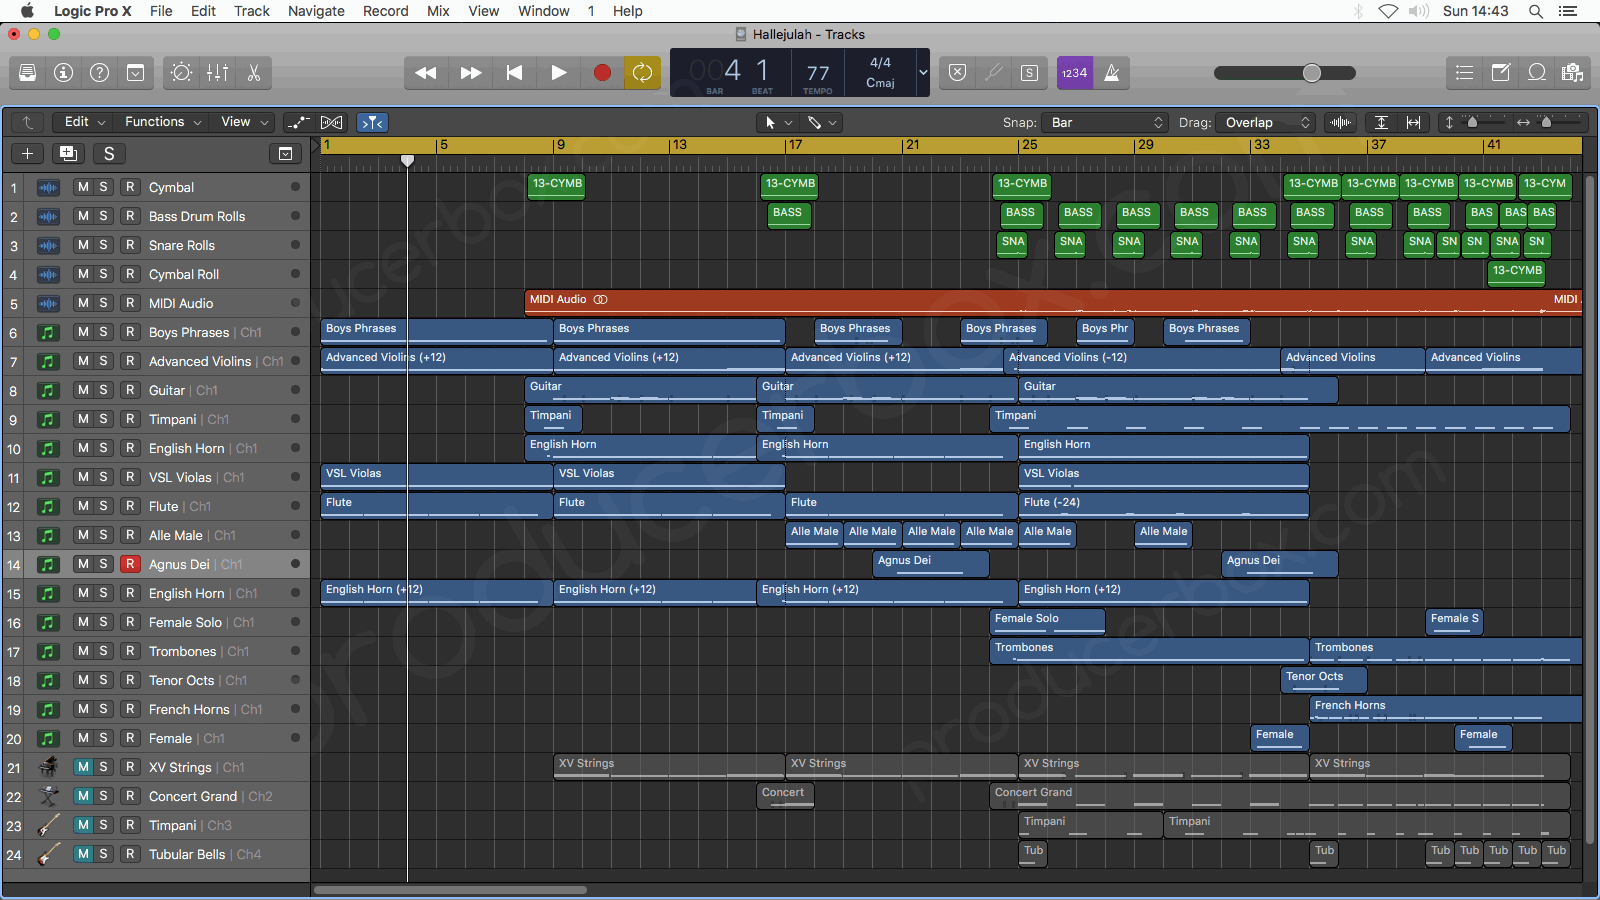 Logic Pro Arrangement Window Screenshot